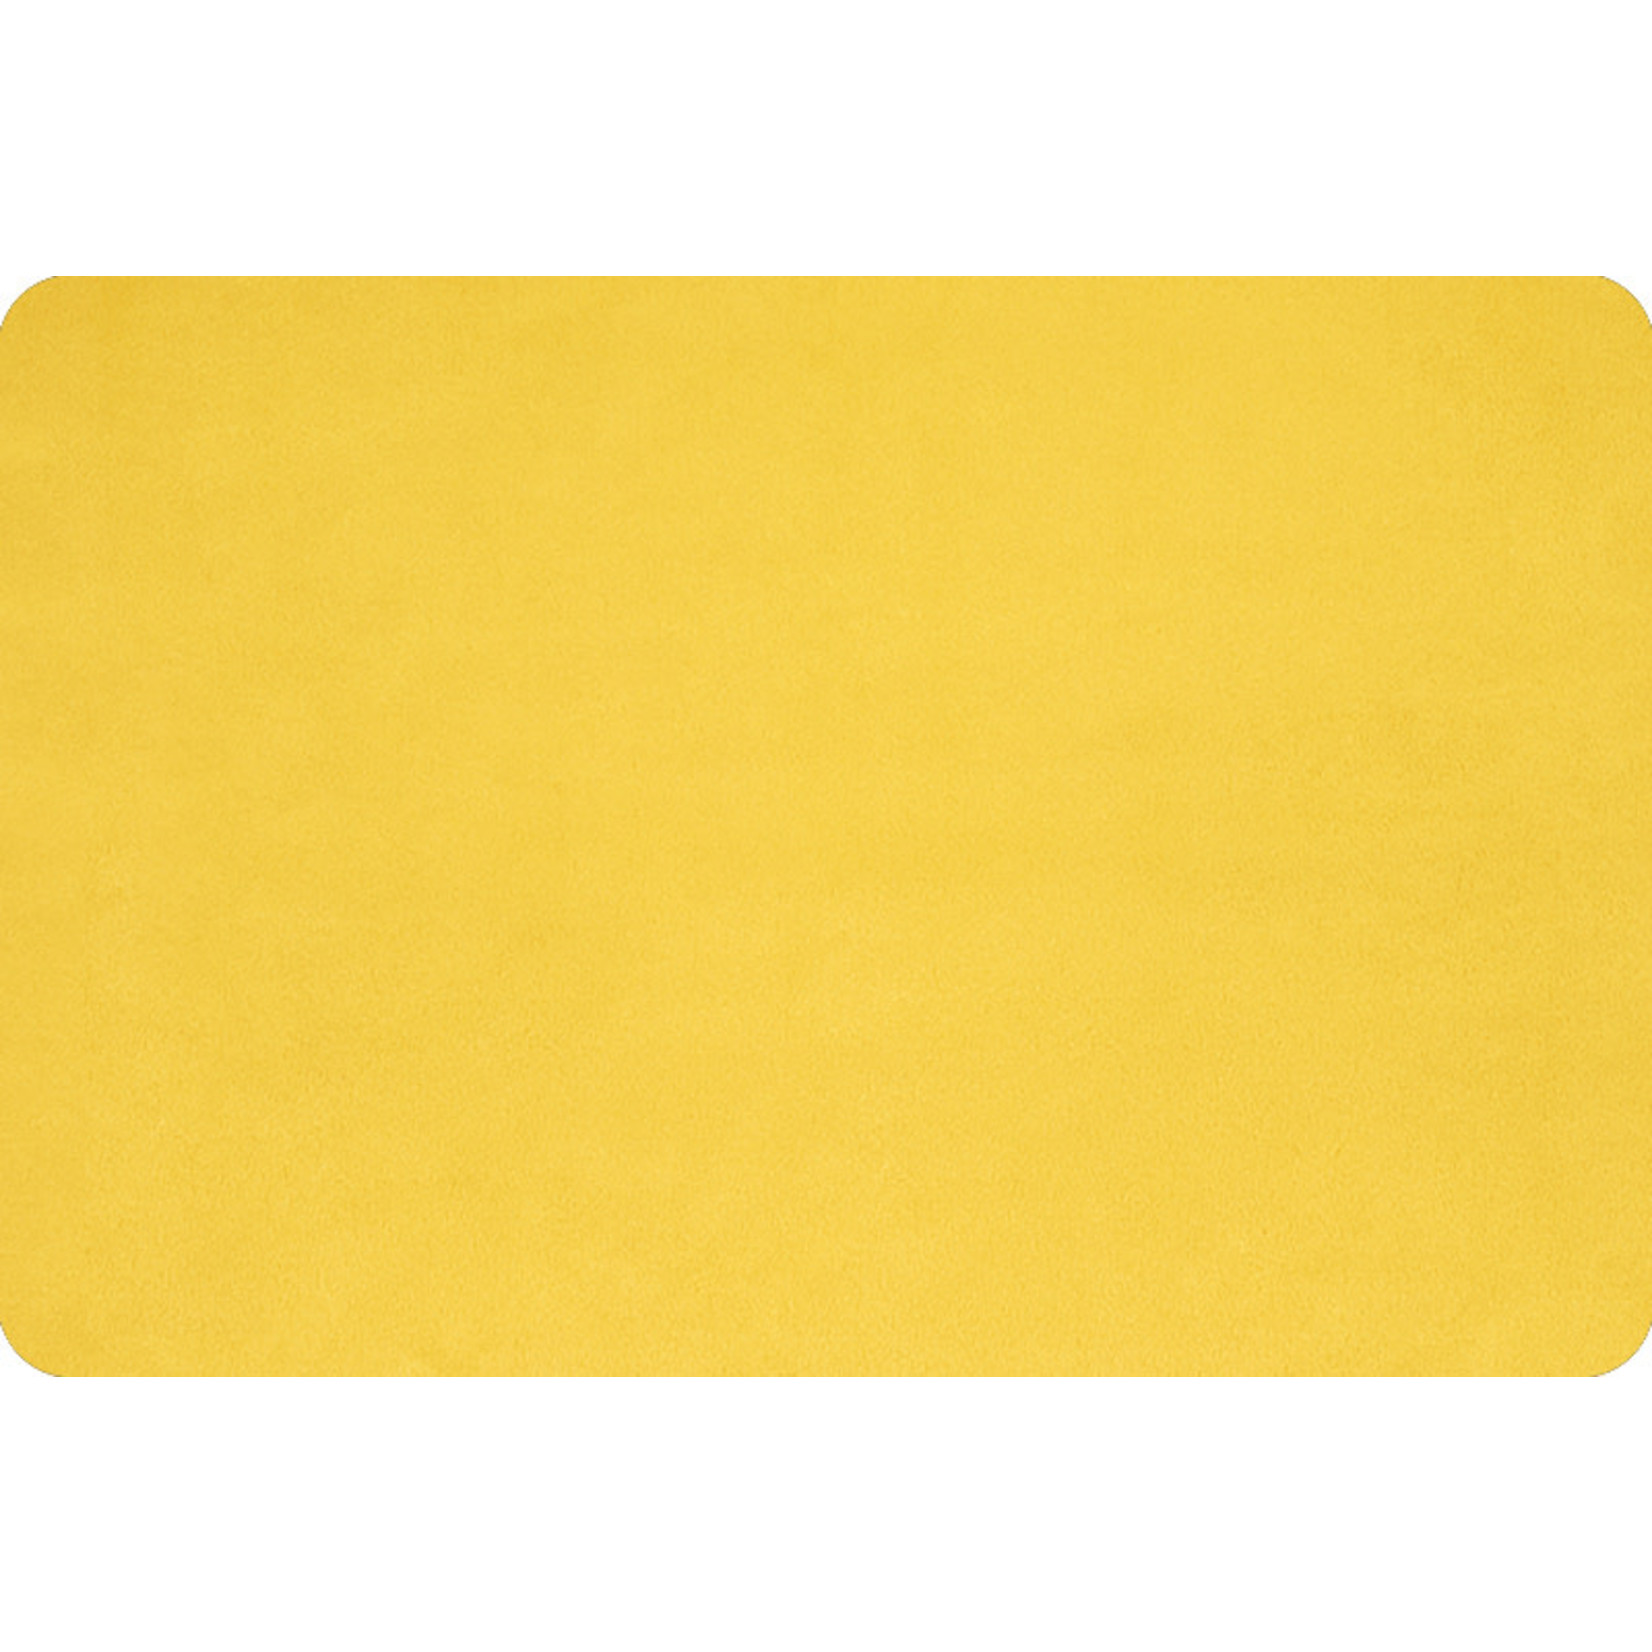 """Shannon Fabrics Minky, Extra Wide Solid Cuddle3, 90"""" Sunshine, (by the inch)"""